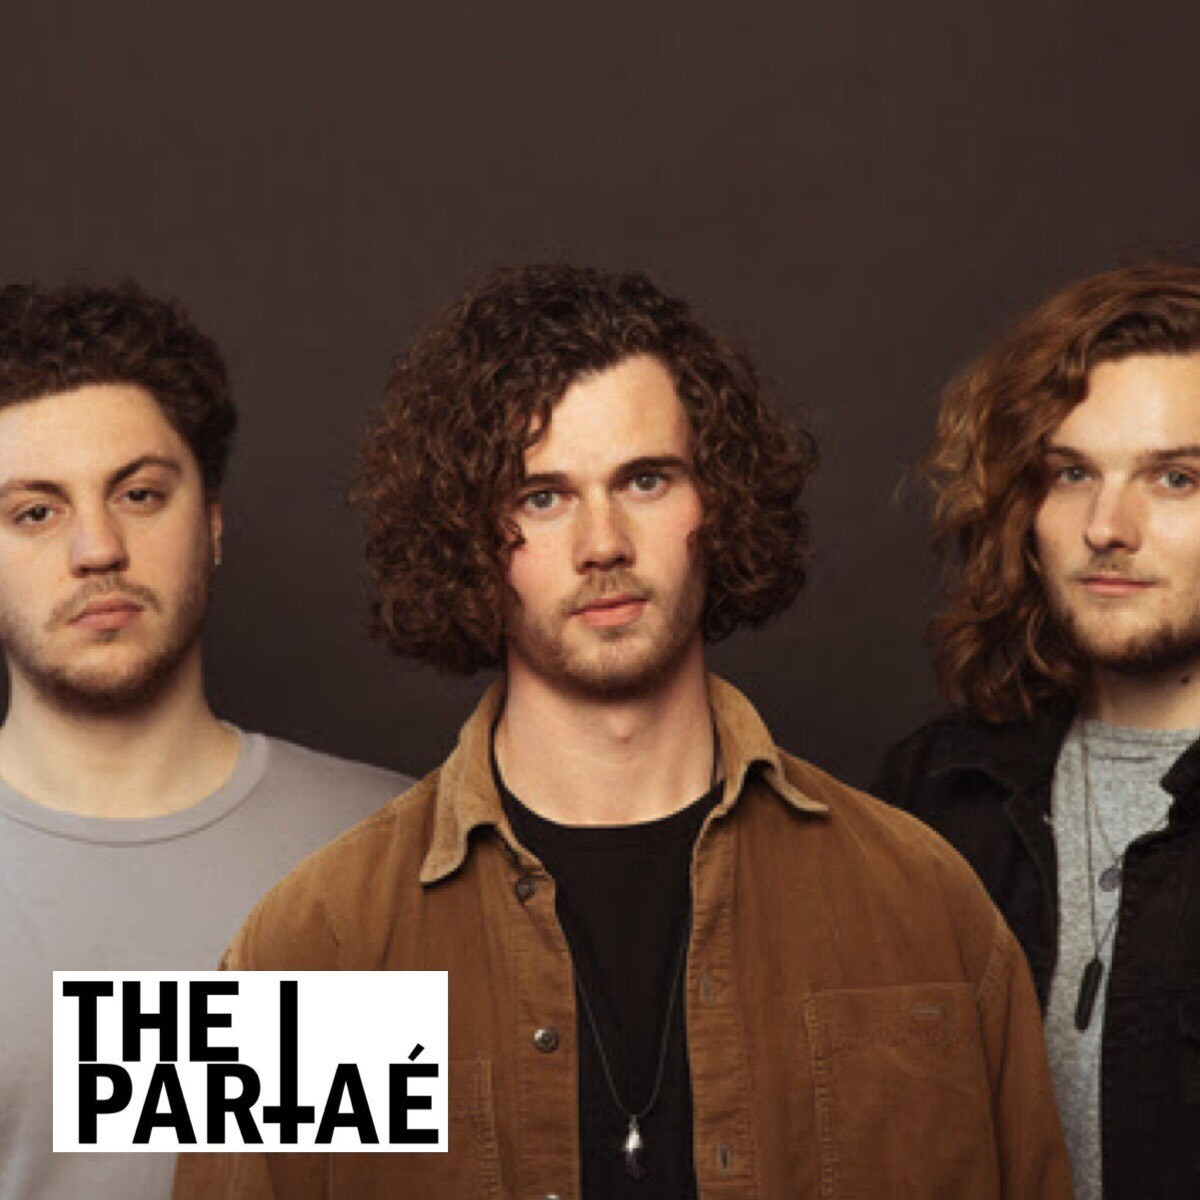 The wild state the partae